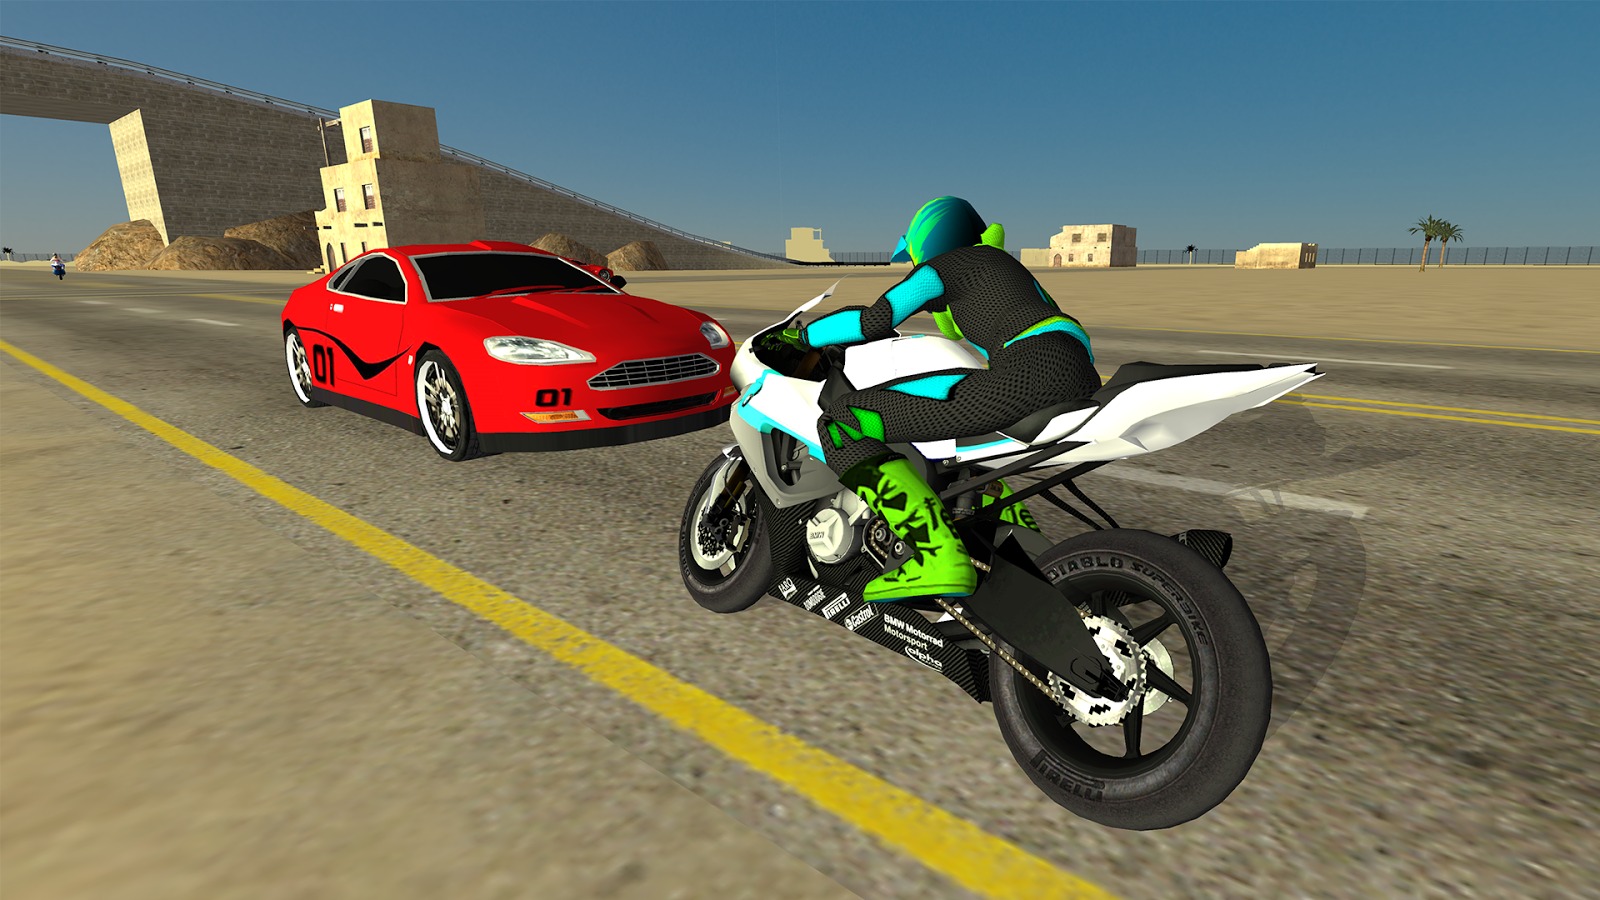 Motorbike driving simulator 3d android apps on google play for Simulatore 3d